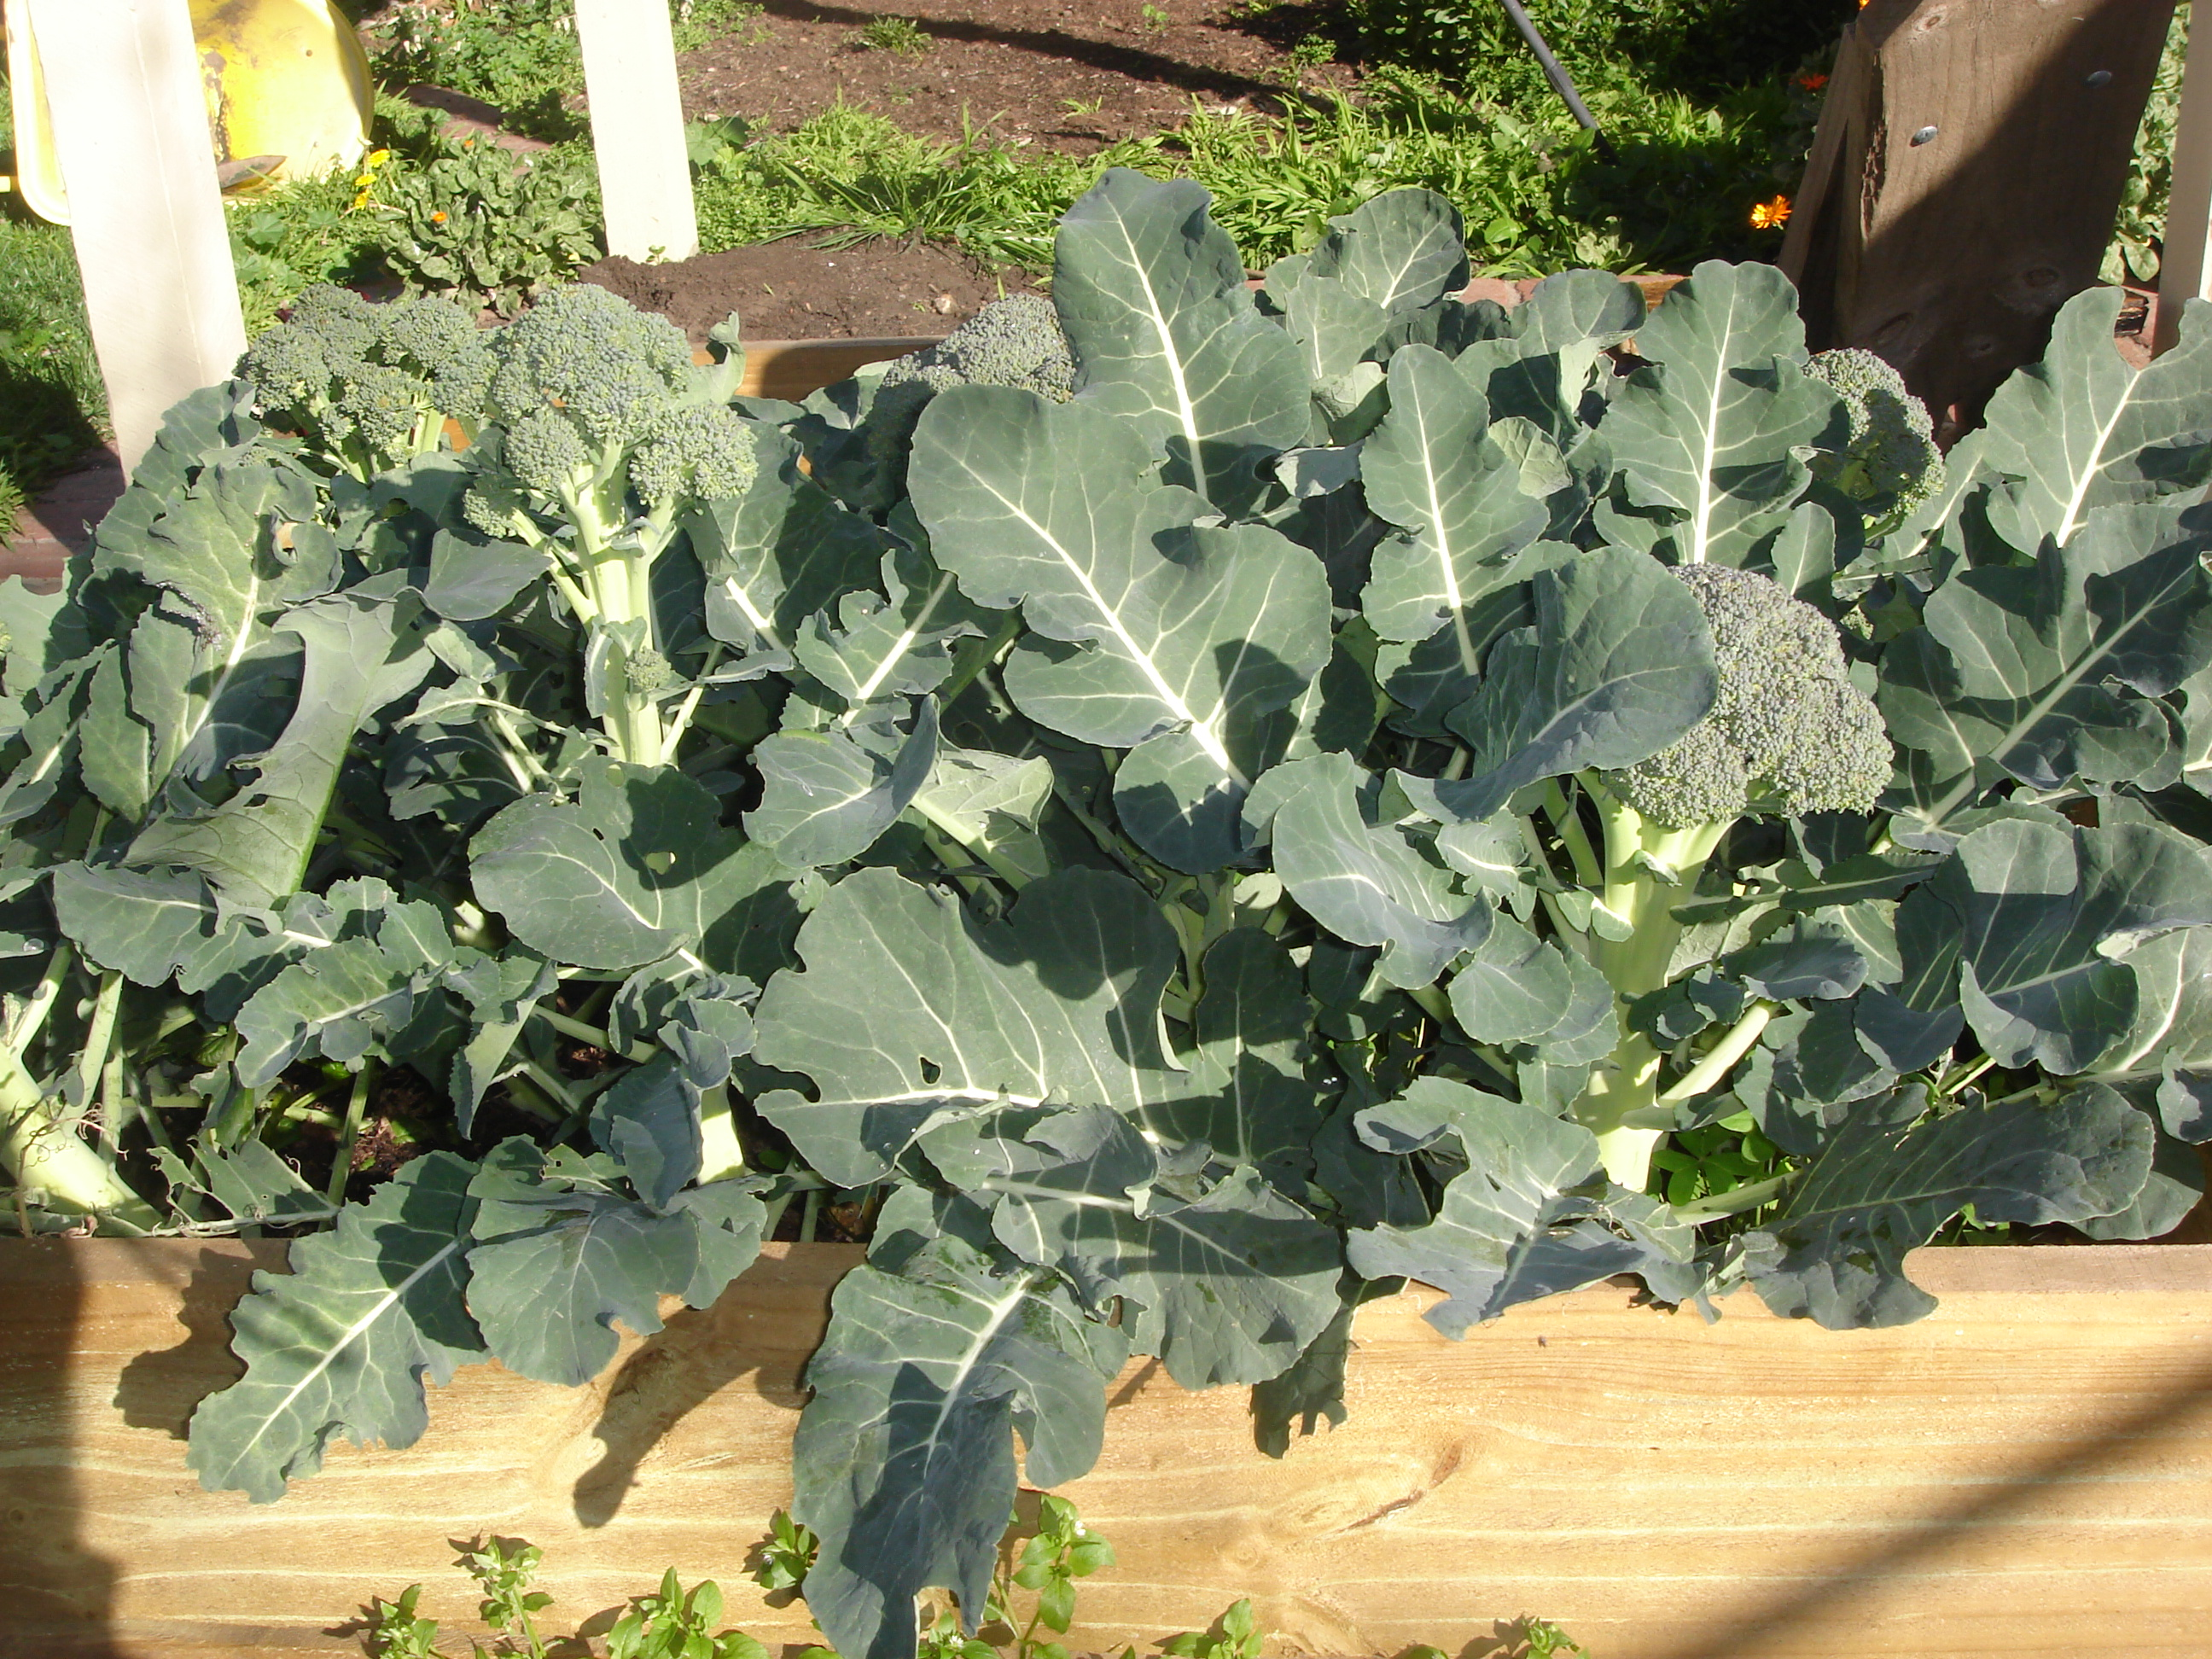 Broccoli by Etbe (http://en.wikipedia.org/wiki/File:Broccoli-patch-big.jpg)